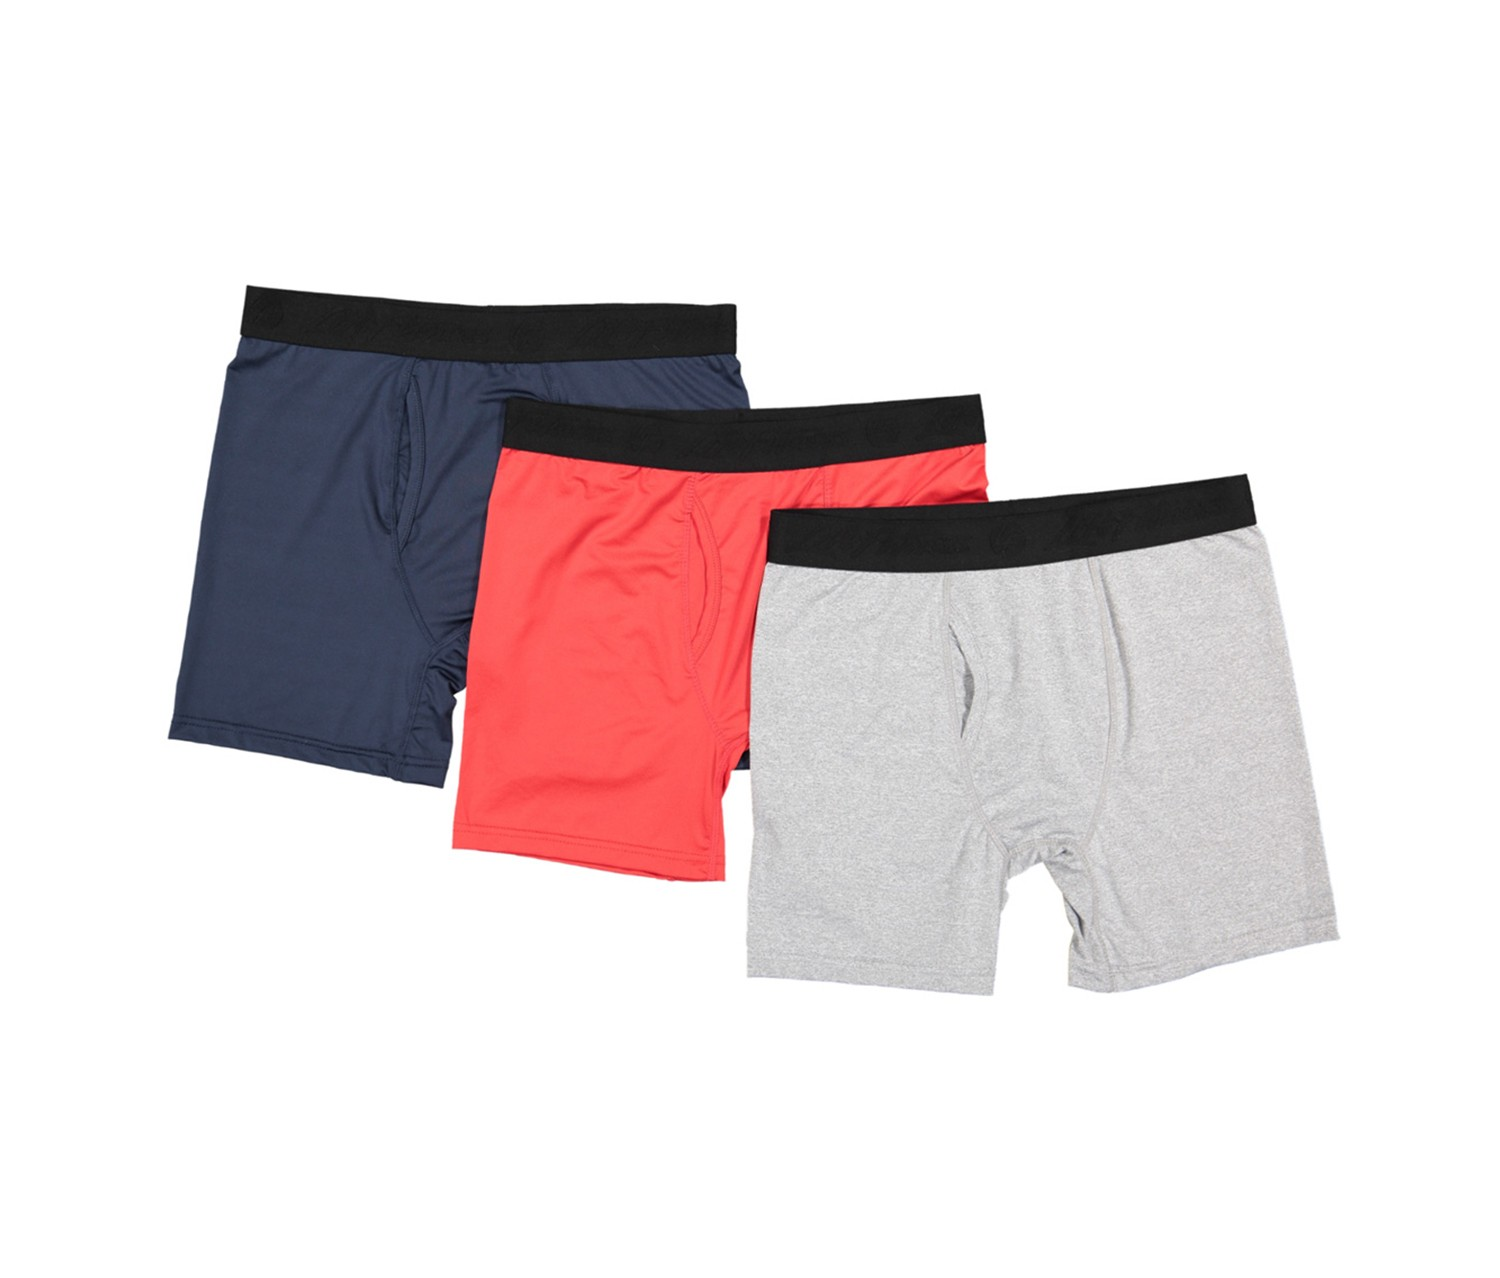 Life Fitness Performance Boxer Briefs, Navy/Red/Gray